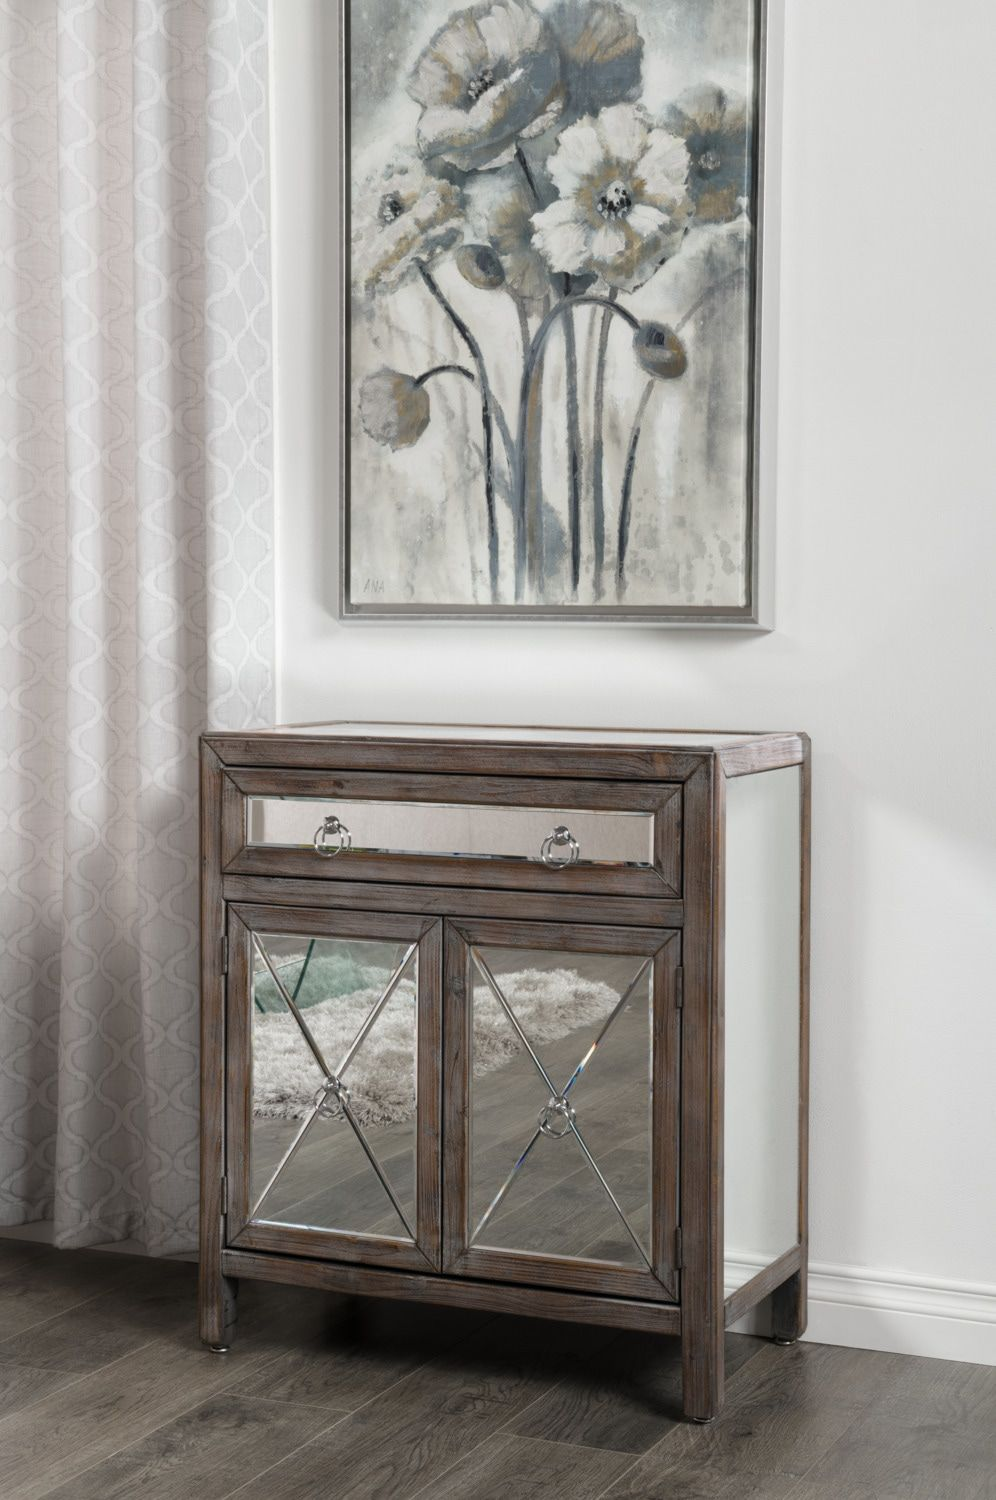 Nicolet Accent Cabinet | The Brick | Accent cabinet, Home ...